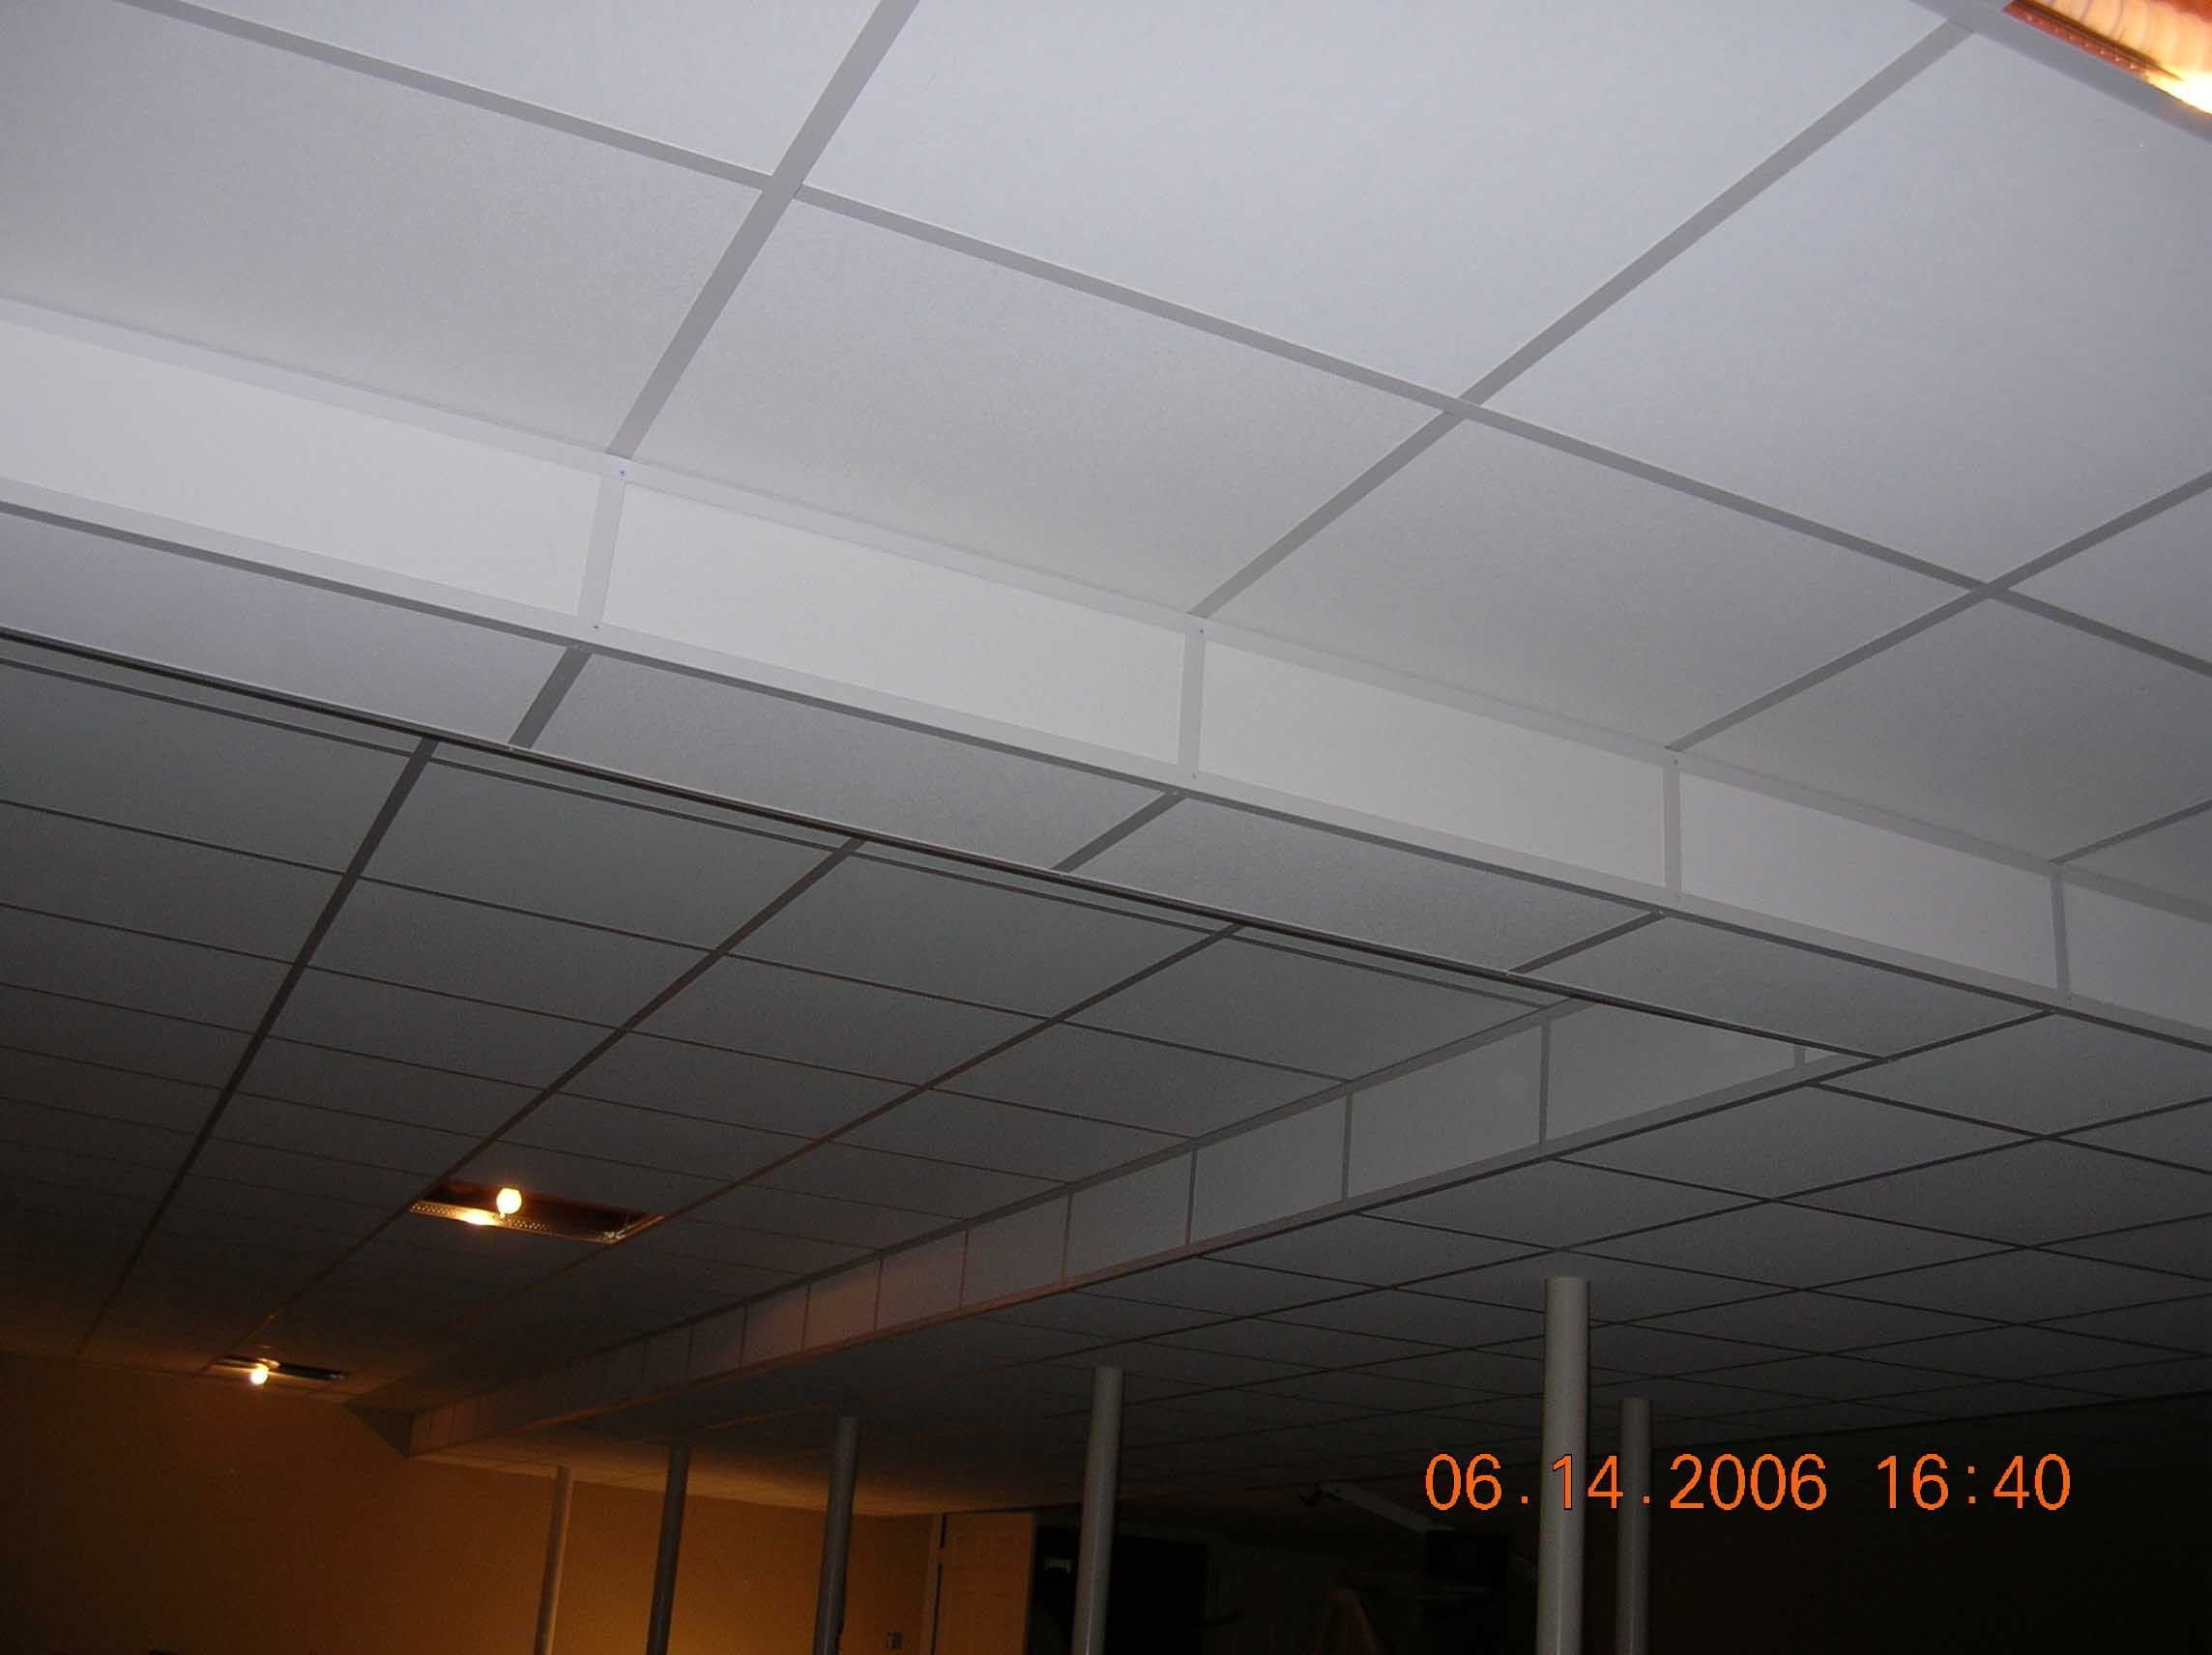 style modern in to tiles larger on and ceiling genesis down image lay view click ceilings drop